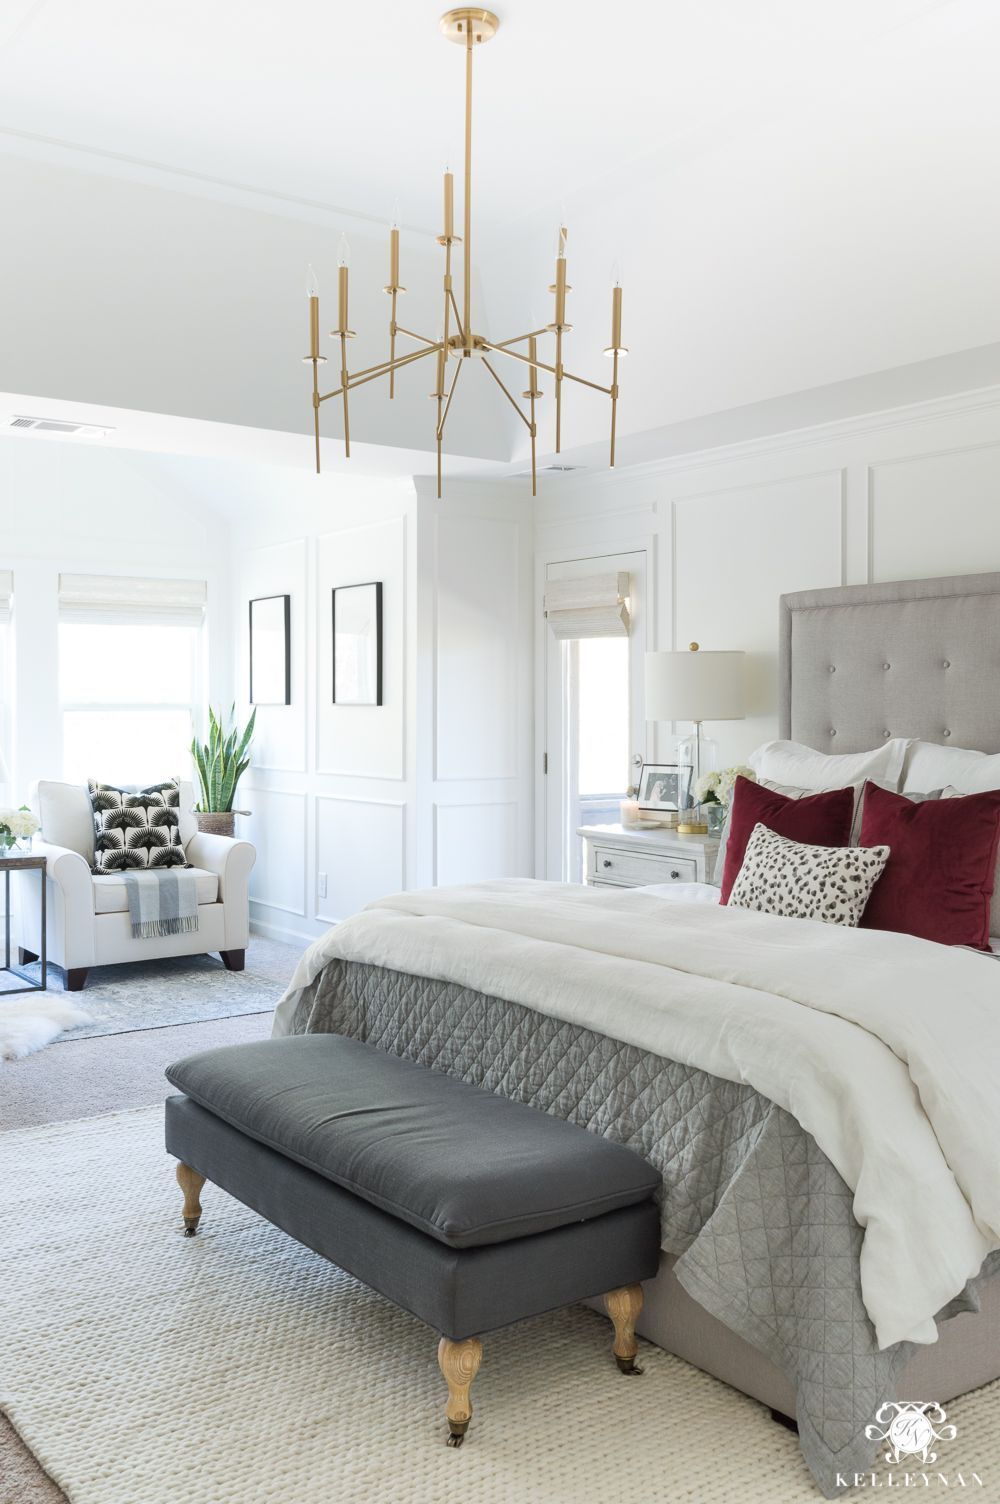 Master Bedroom Decorating Ideas With Modern Brass Chandelier And White Walls With Molding White Master Bedroom Master Bedroom Wall Decor Bedroom Interior